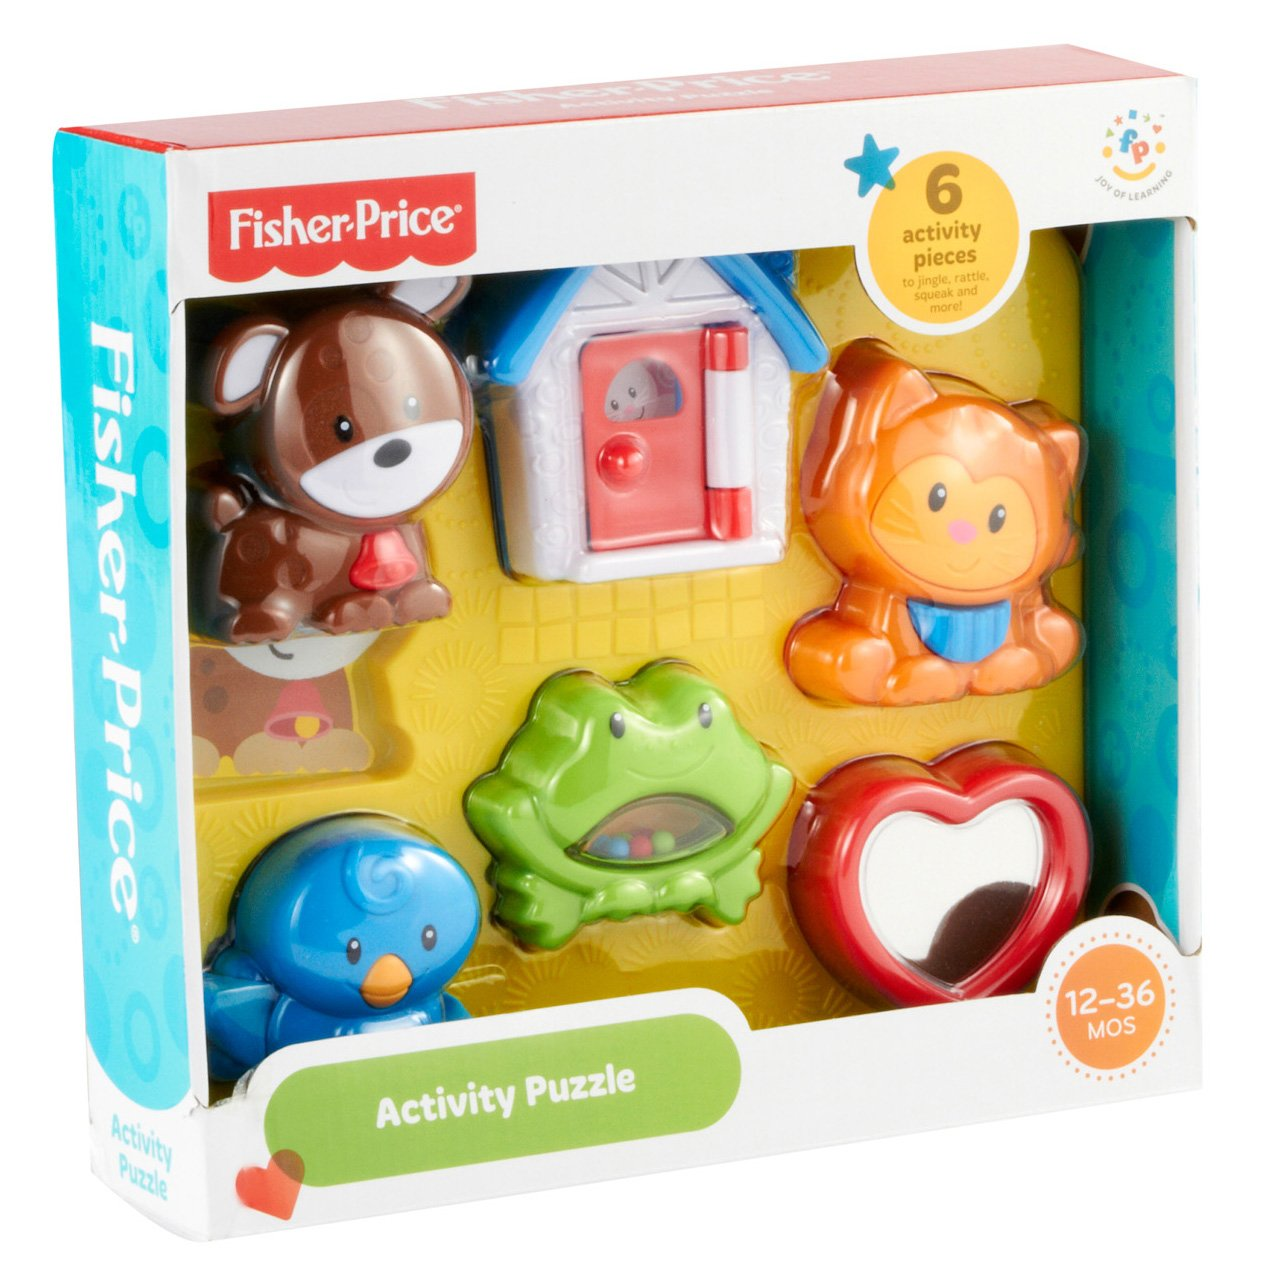 Toddler Toys Puzzle : Activity puzzle fisher price brilliant basics new toy for